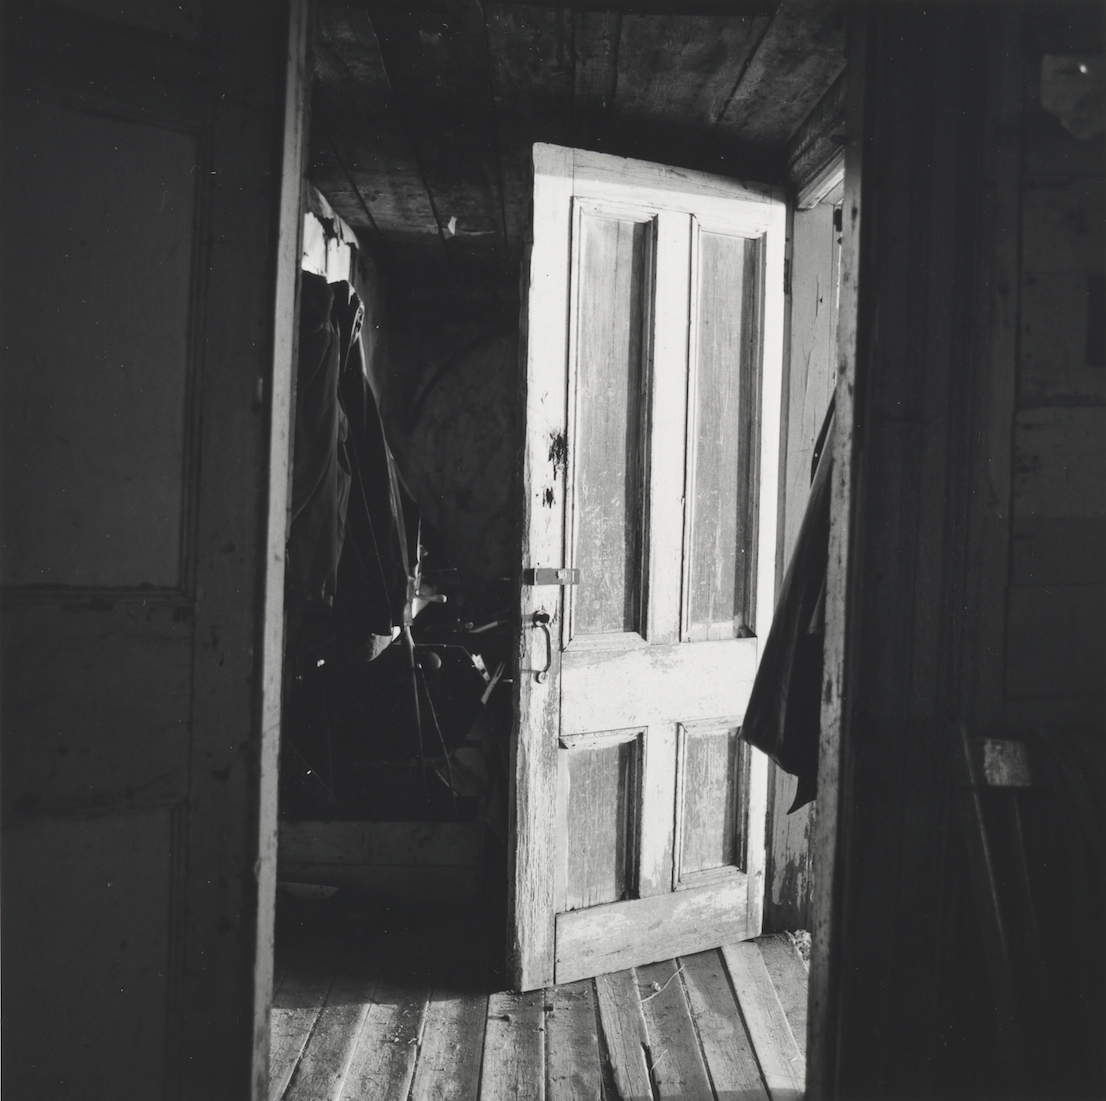 Walker Evans, Interior View of Robert Frank's House Nova Scotia, 1969 – 71. Collection of Clark and Joan Worswick. © Walker Evans Archive, The Metropolitan Museum of Art.